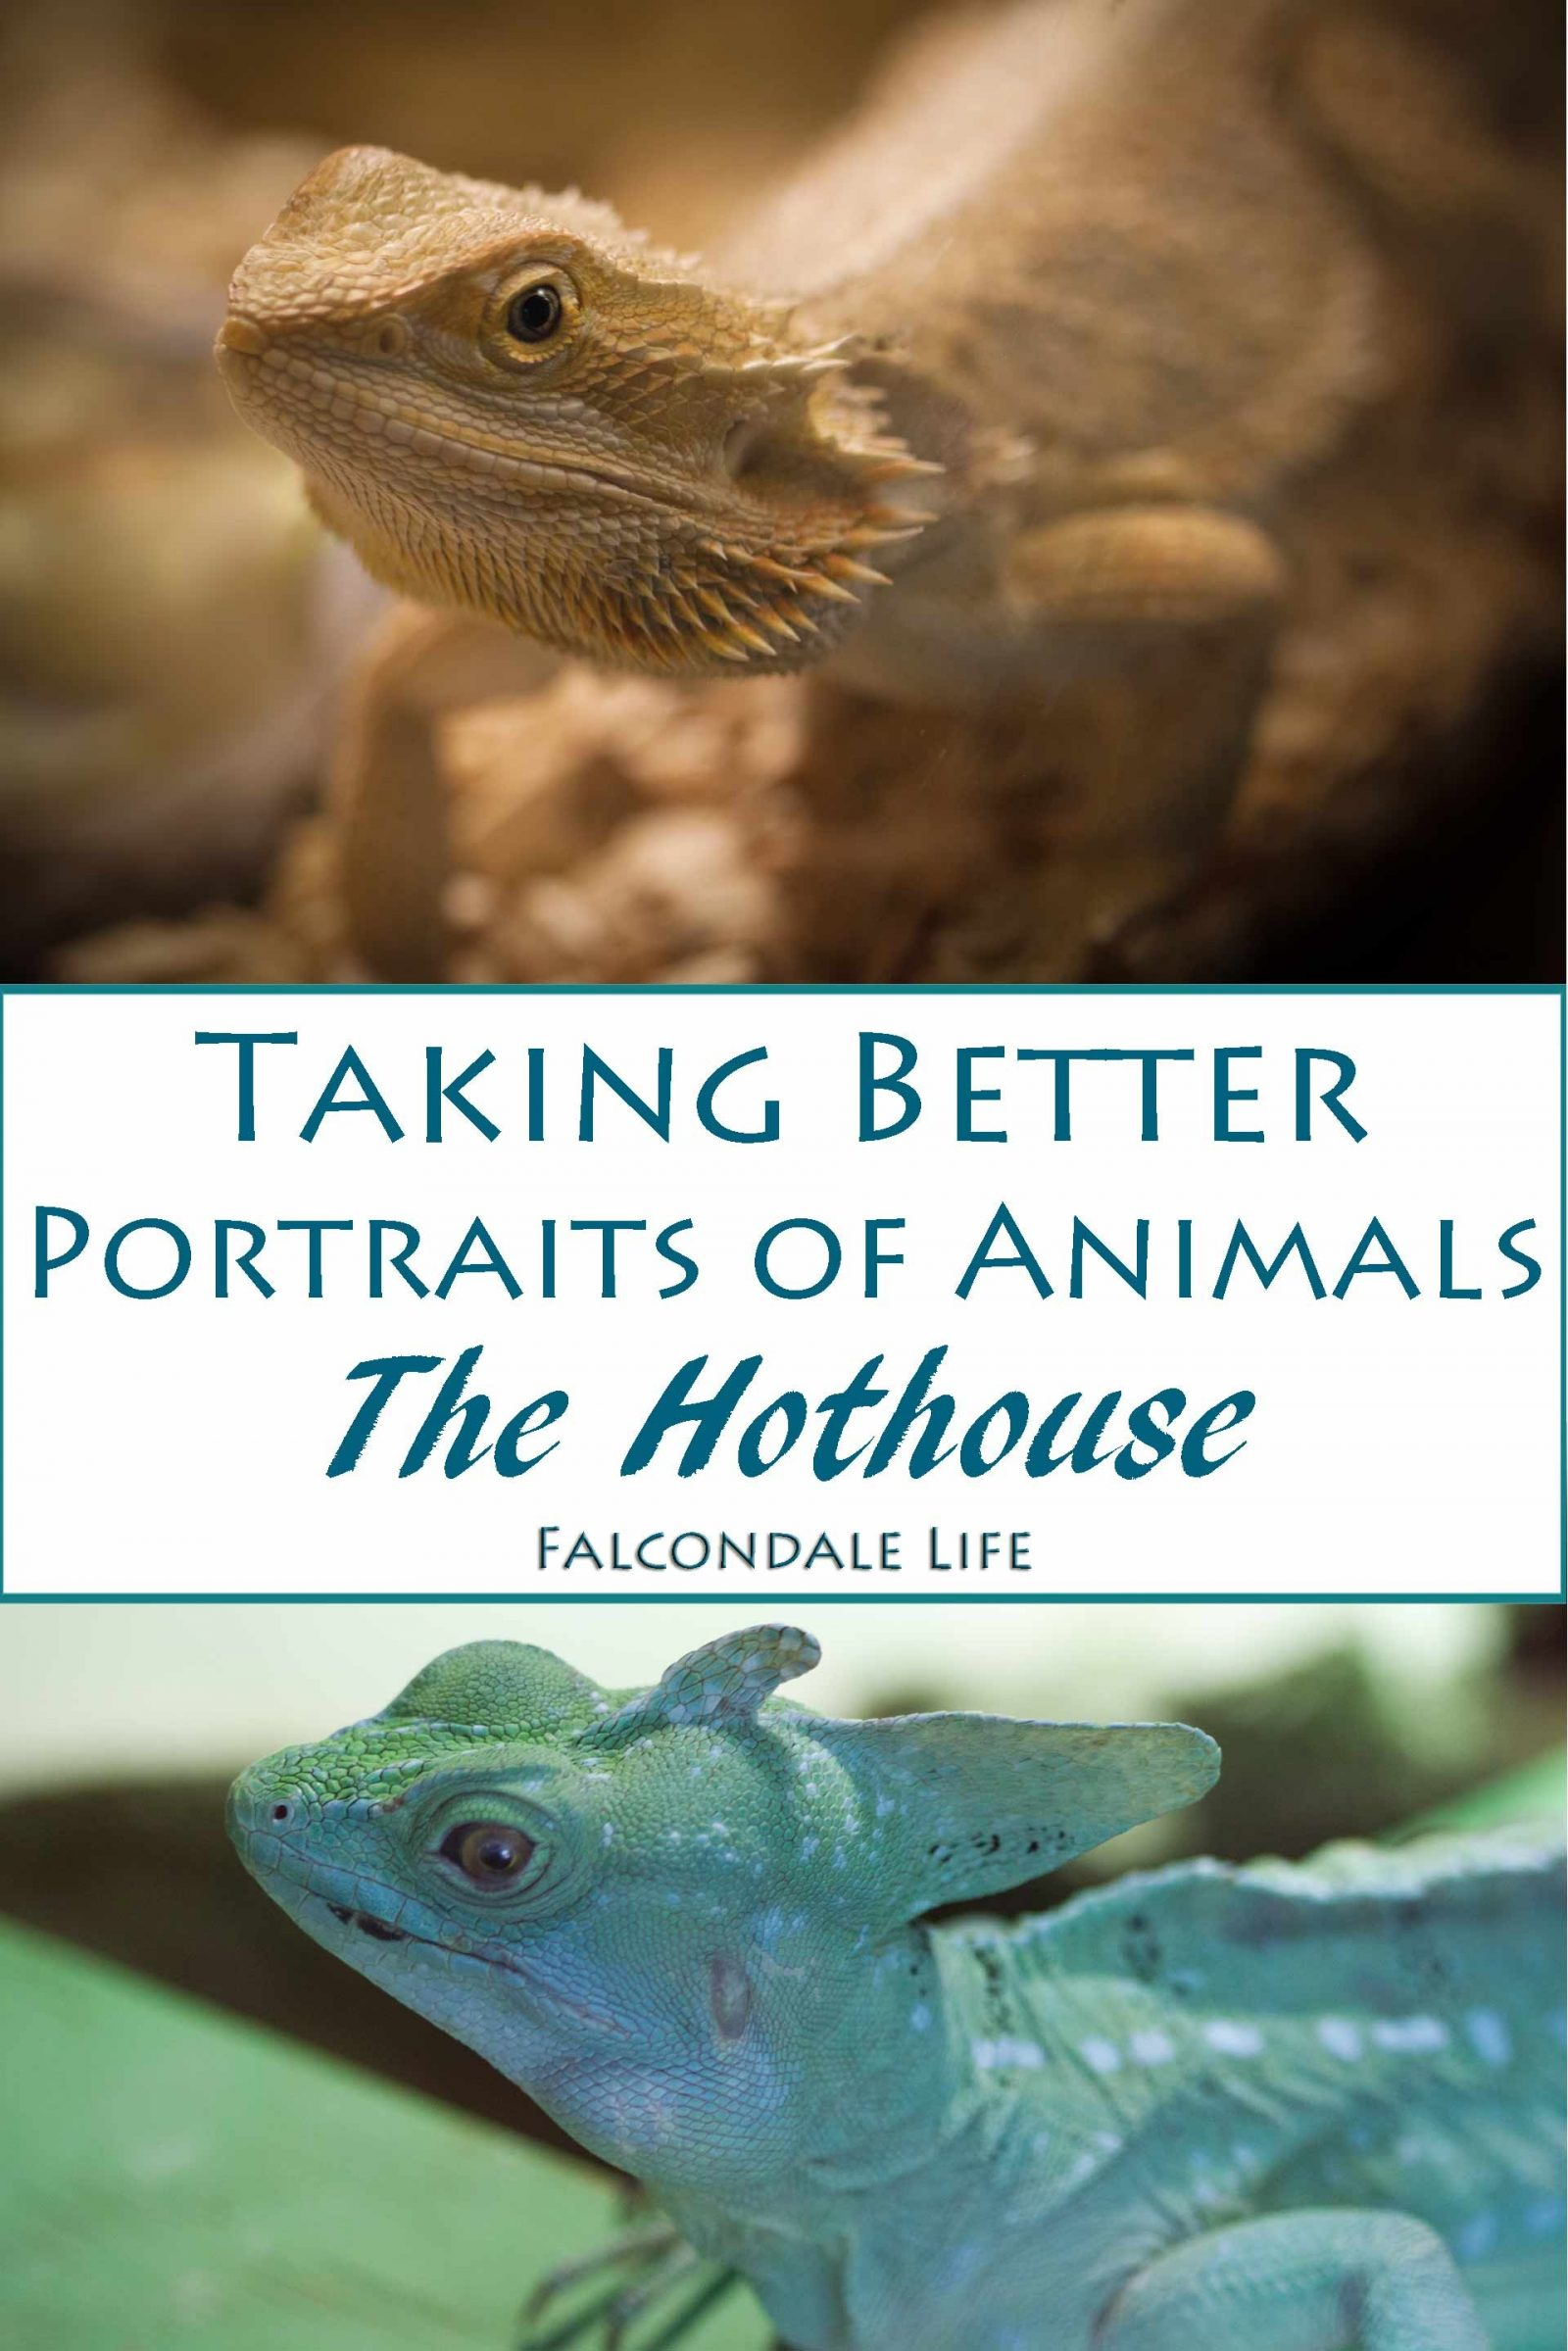 Taking Better Portraits of Animals on Falcondale Life blog. In the Hothouse or Tropical house make adjustments to the exposure of the camera for dark conditions and to avoid reflections in the glass. Try a monopod. Bearded dragon. Green Lizard.